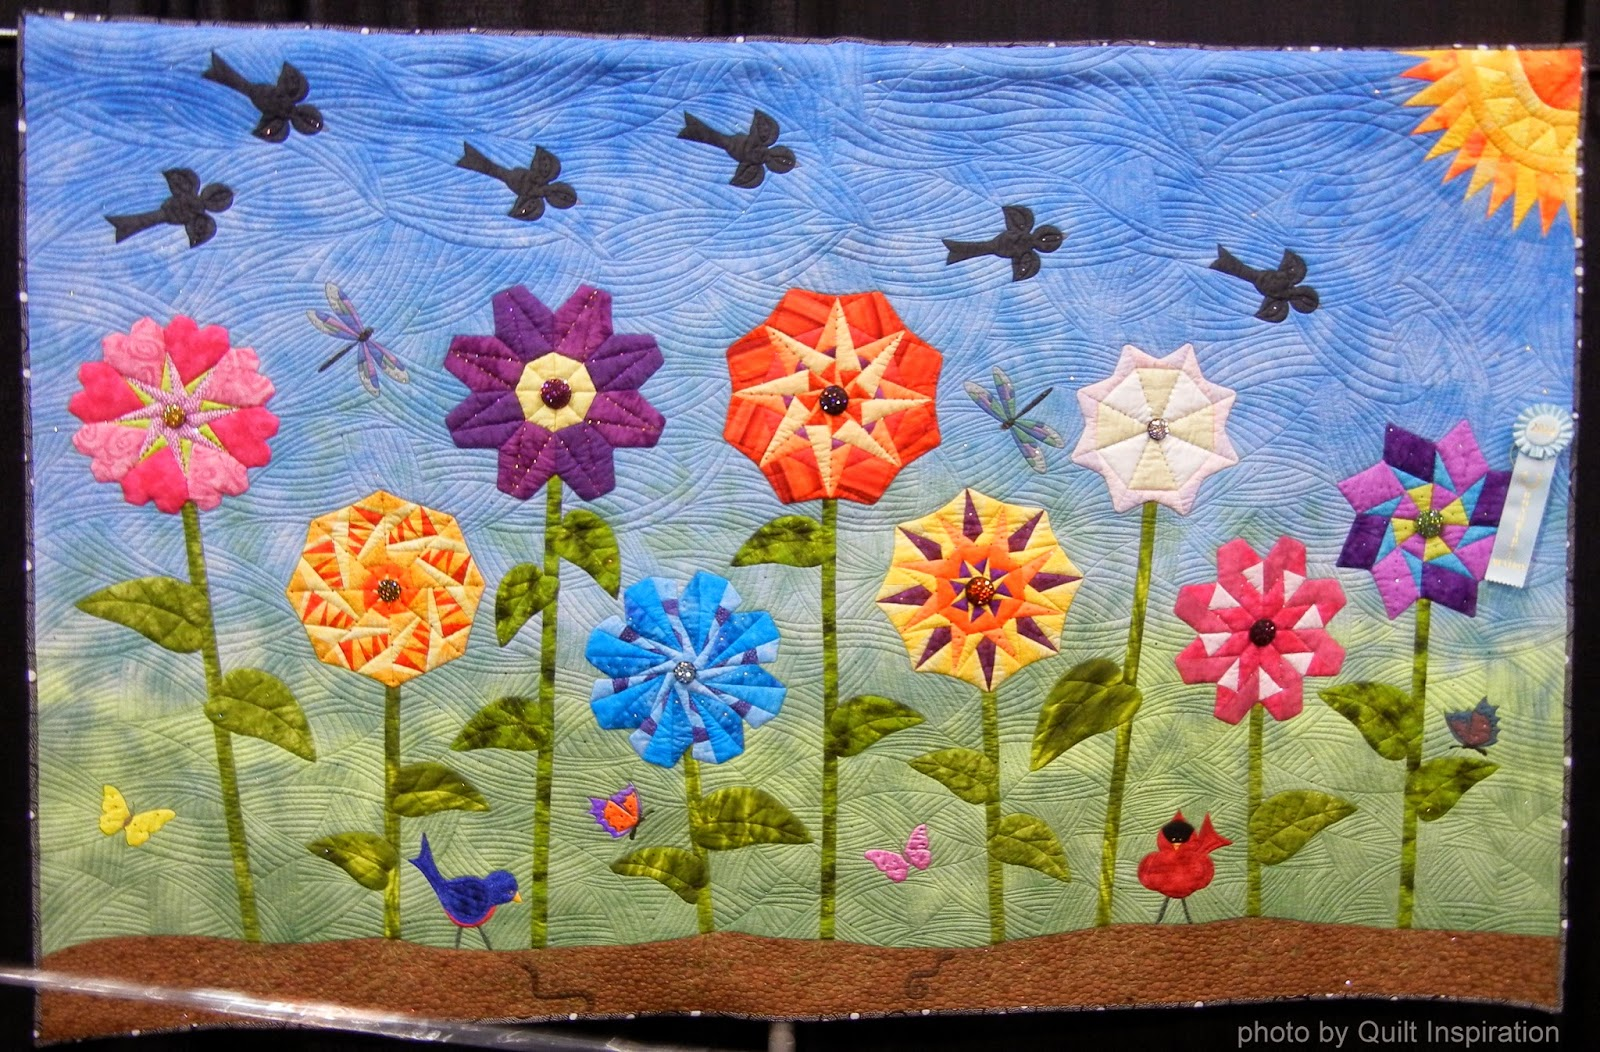 Quilt Inspiration Bloooming Beauties Fun Flower Quilts